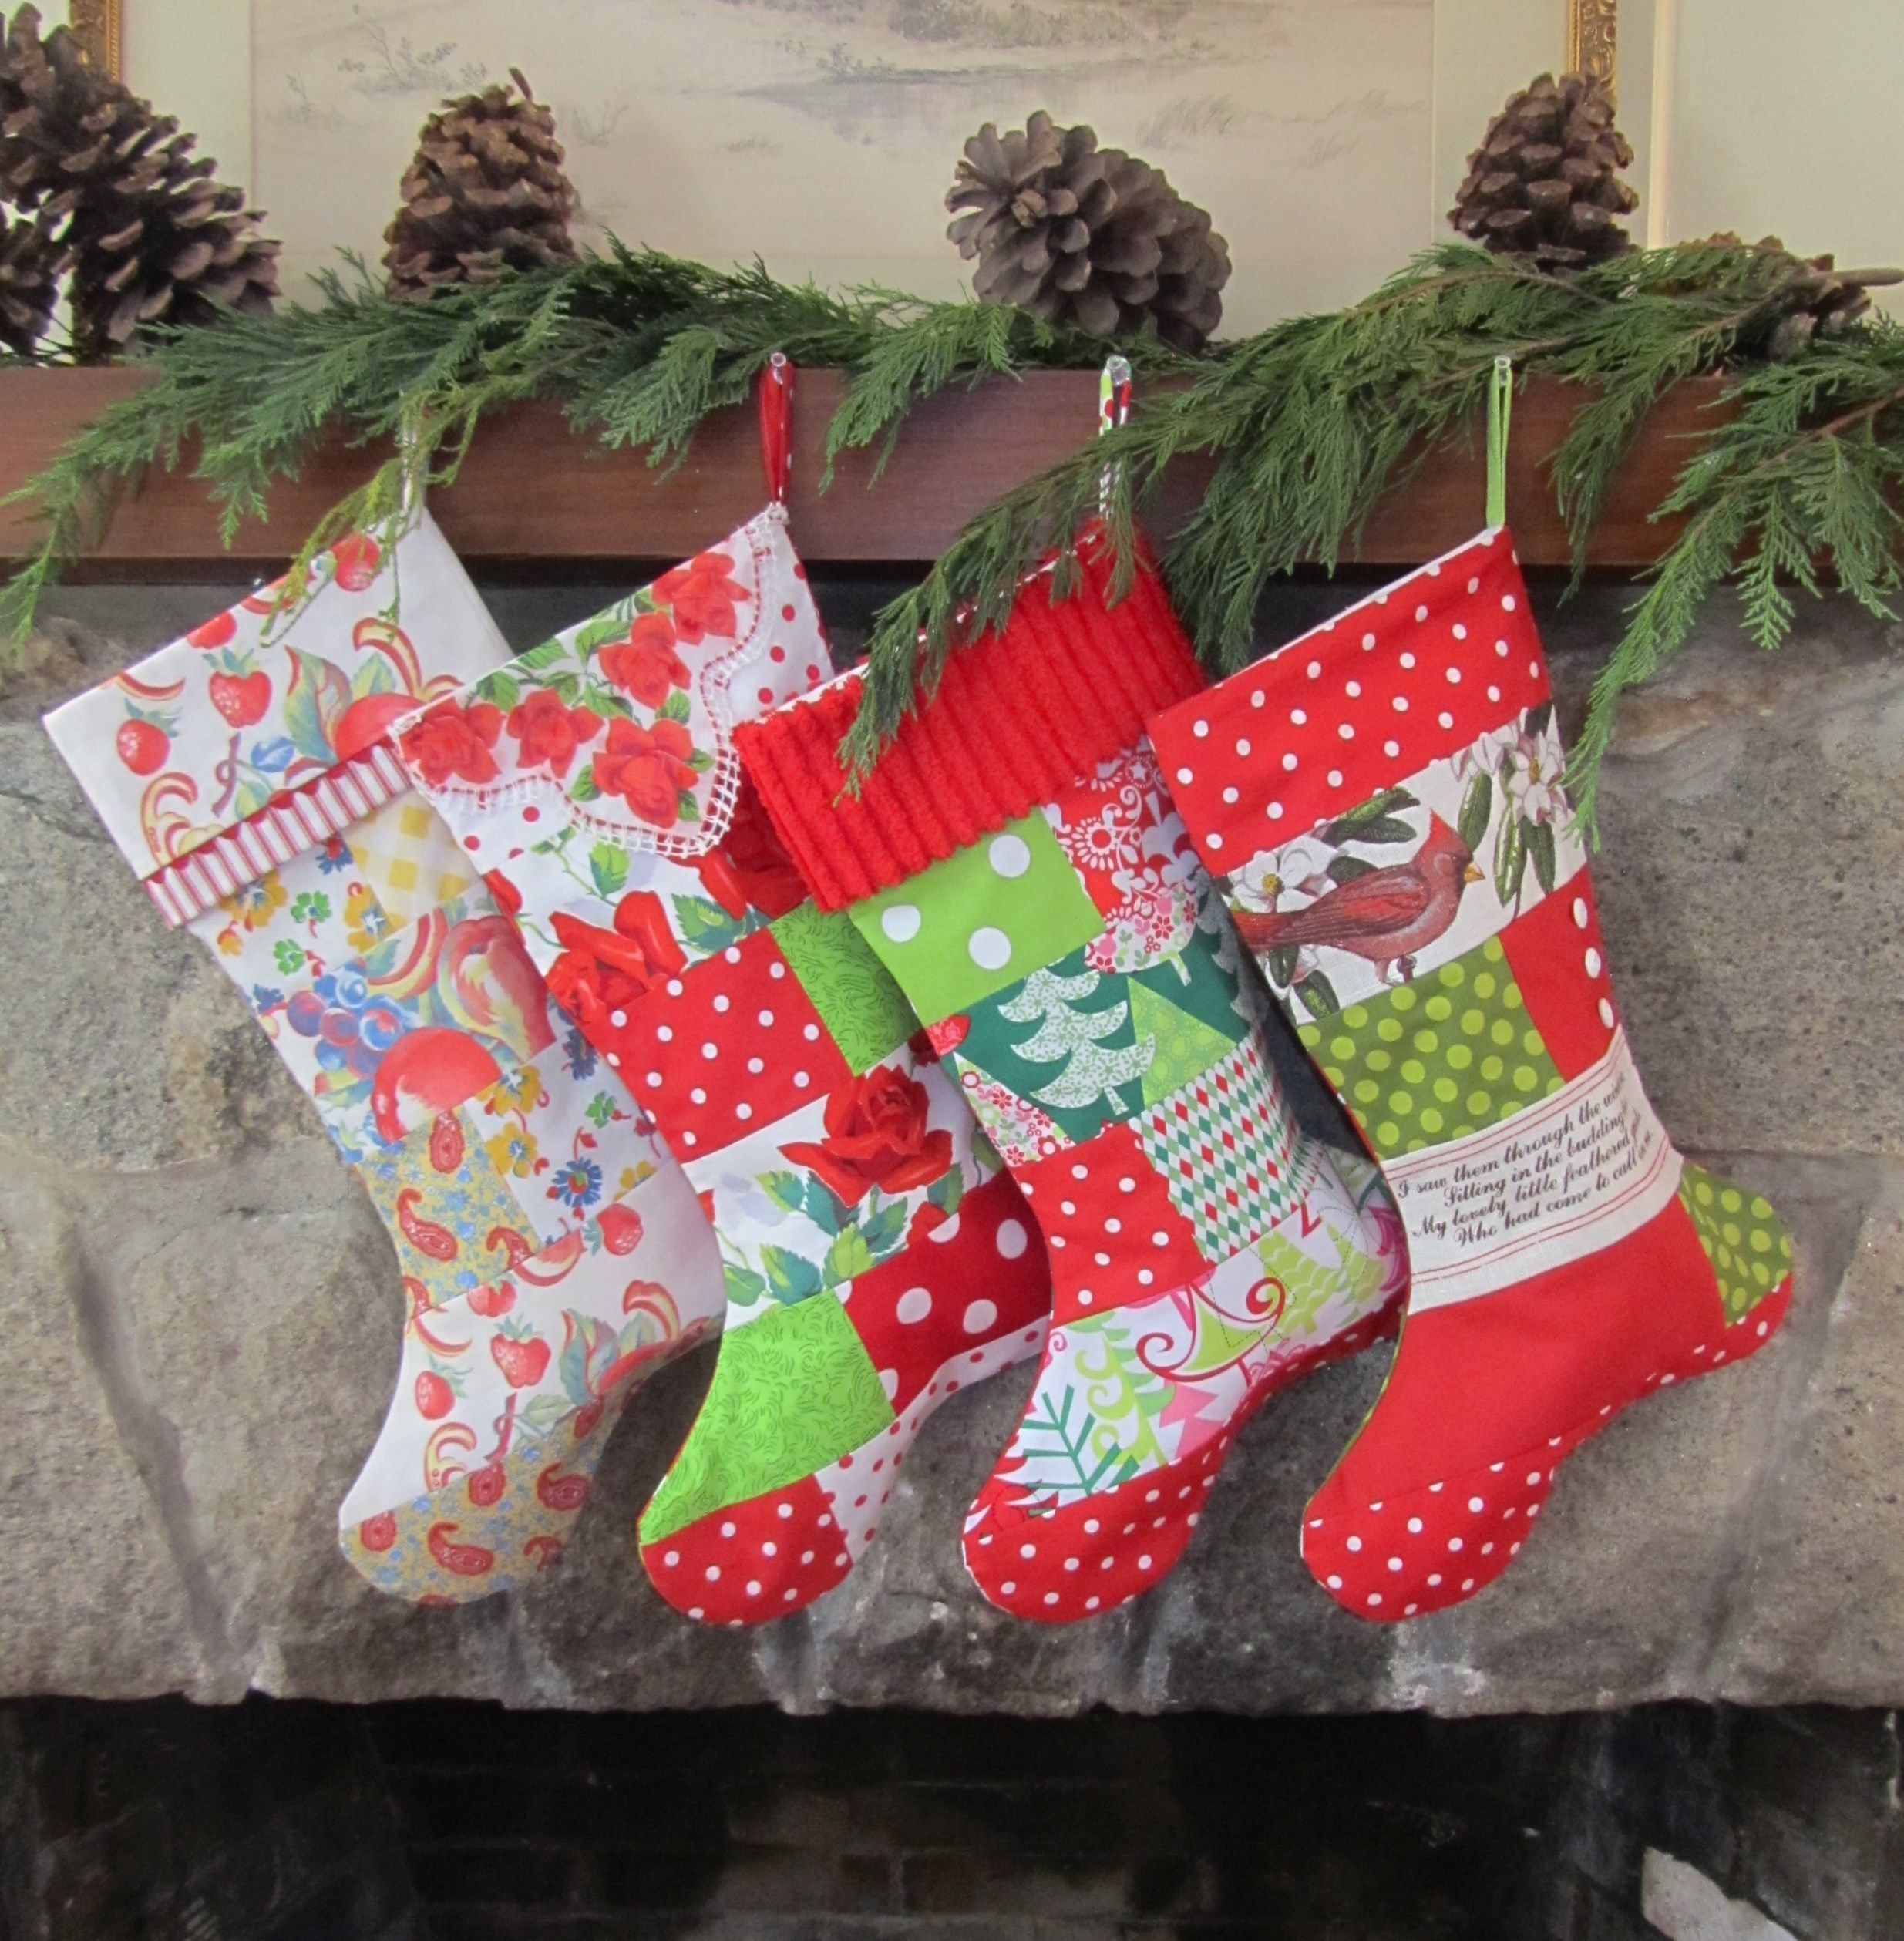 MIX AND MATCH PATCHWORK STOCKINGS at the Christmas Muse. xmasmuse ...